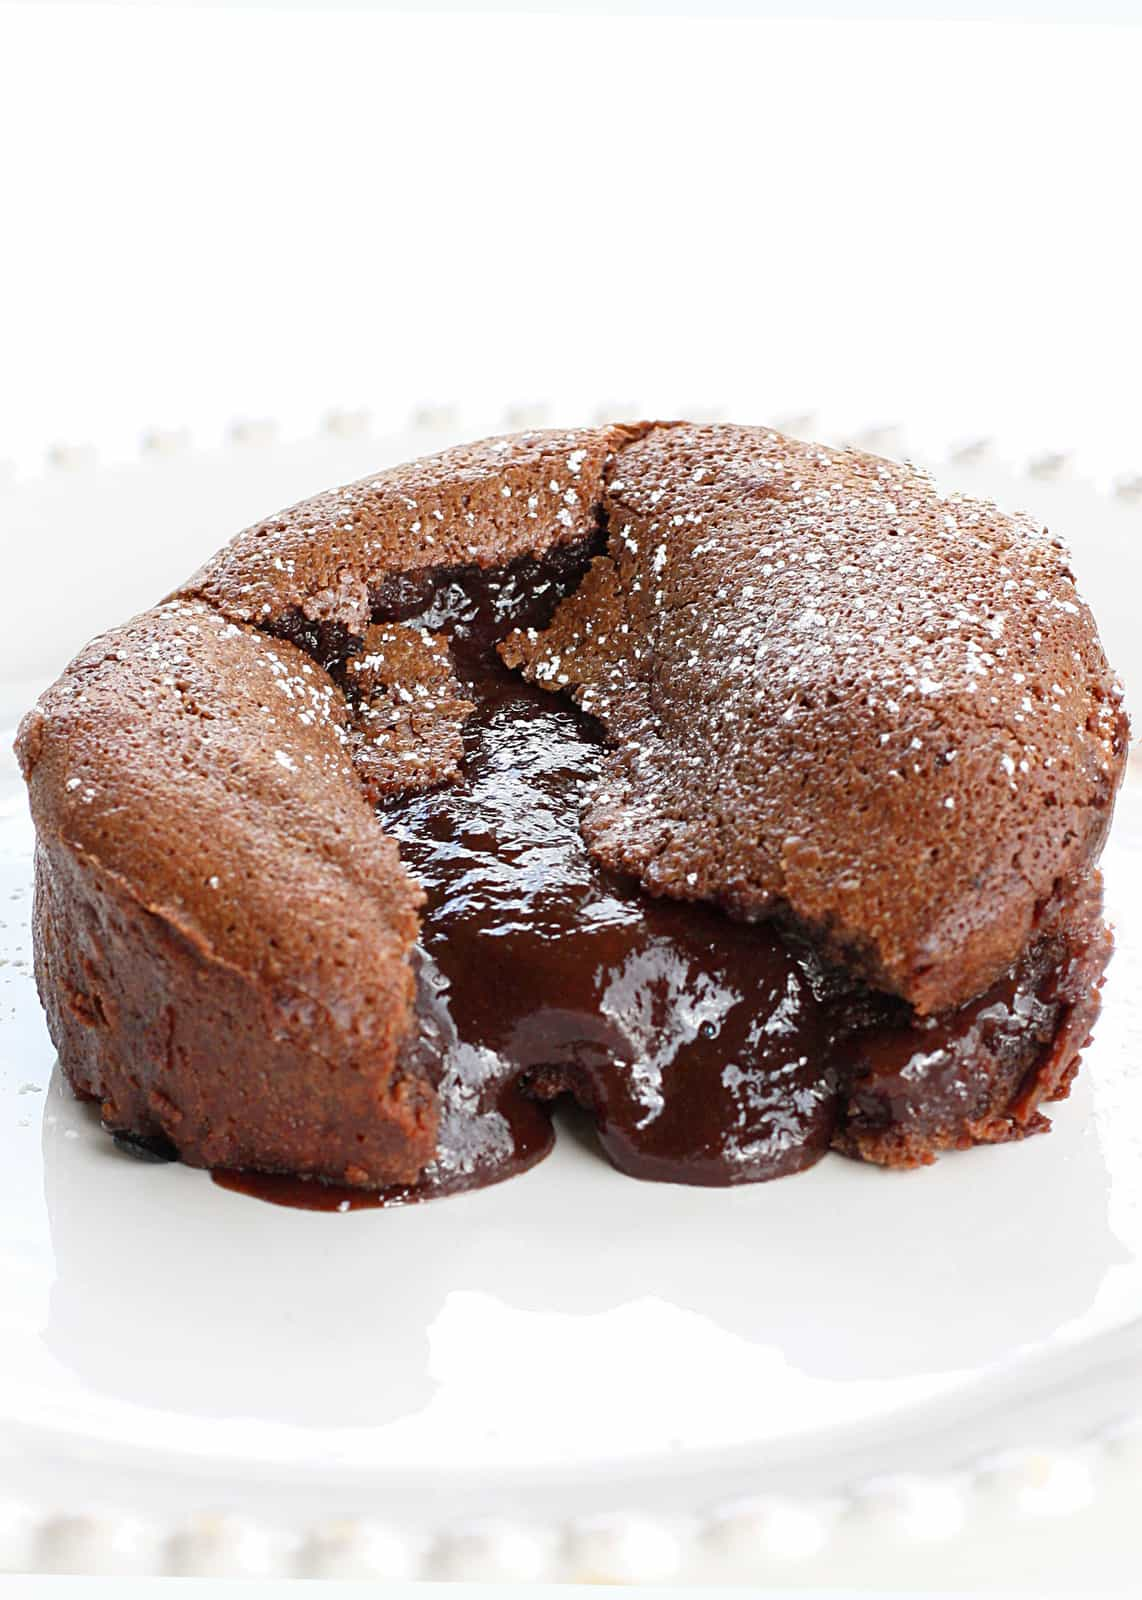 Roy's Chocolate Souffle (Molten Lava Cake)